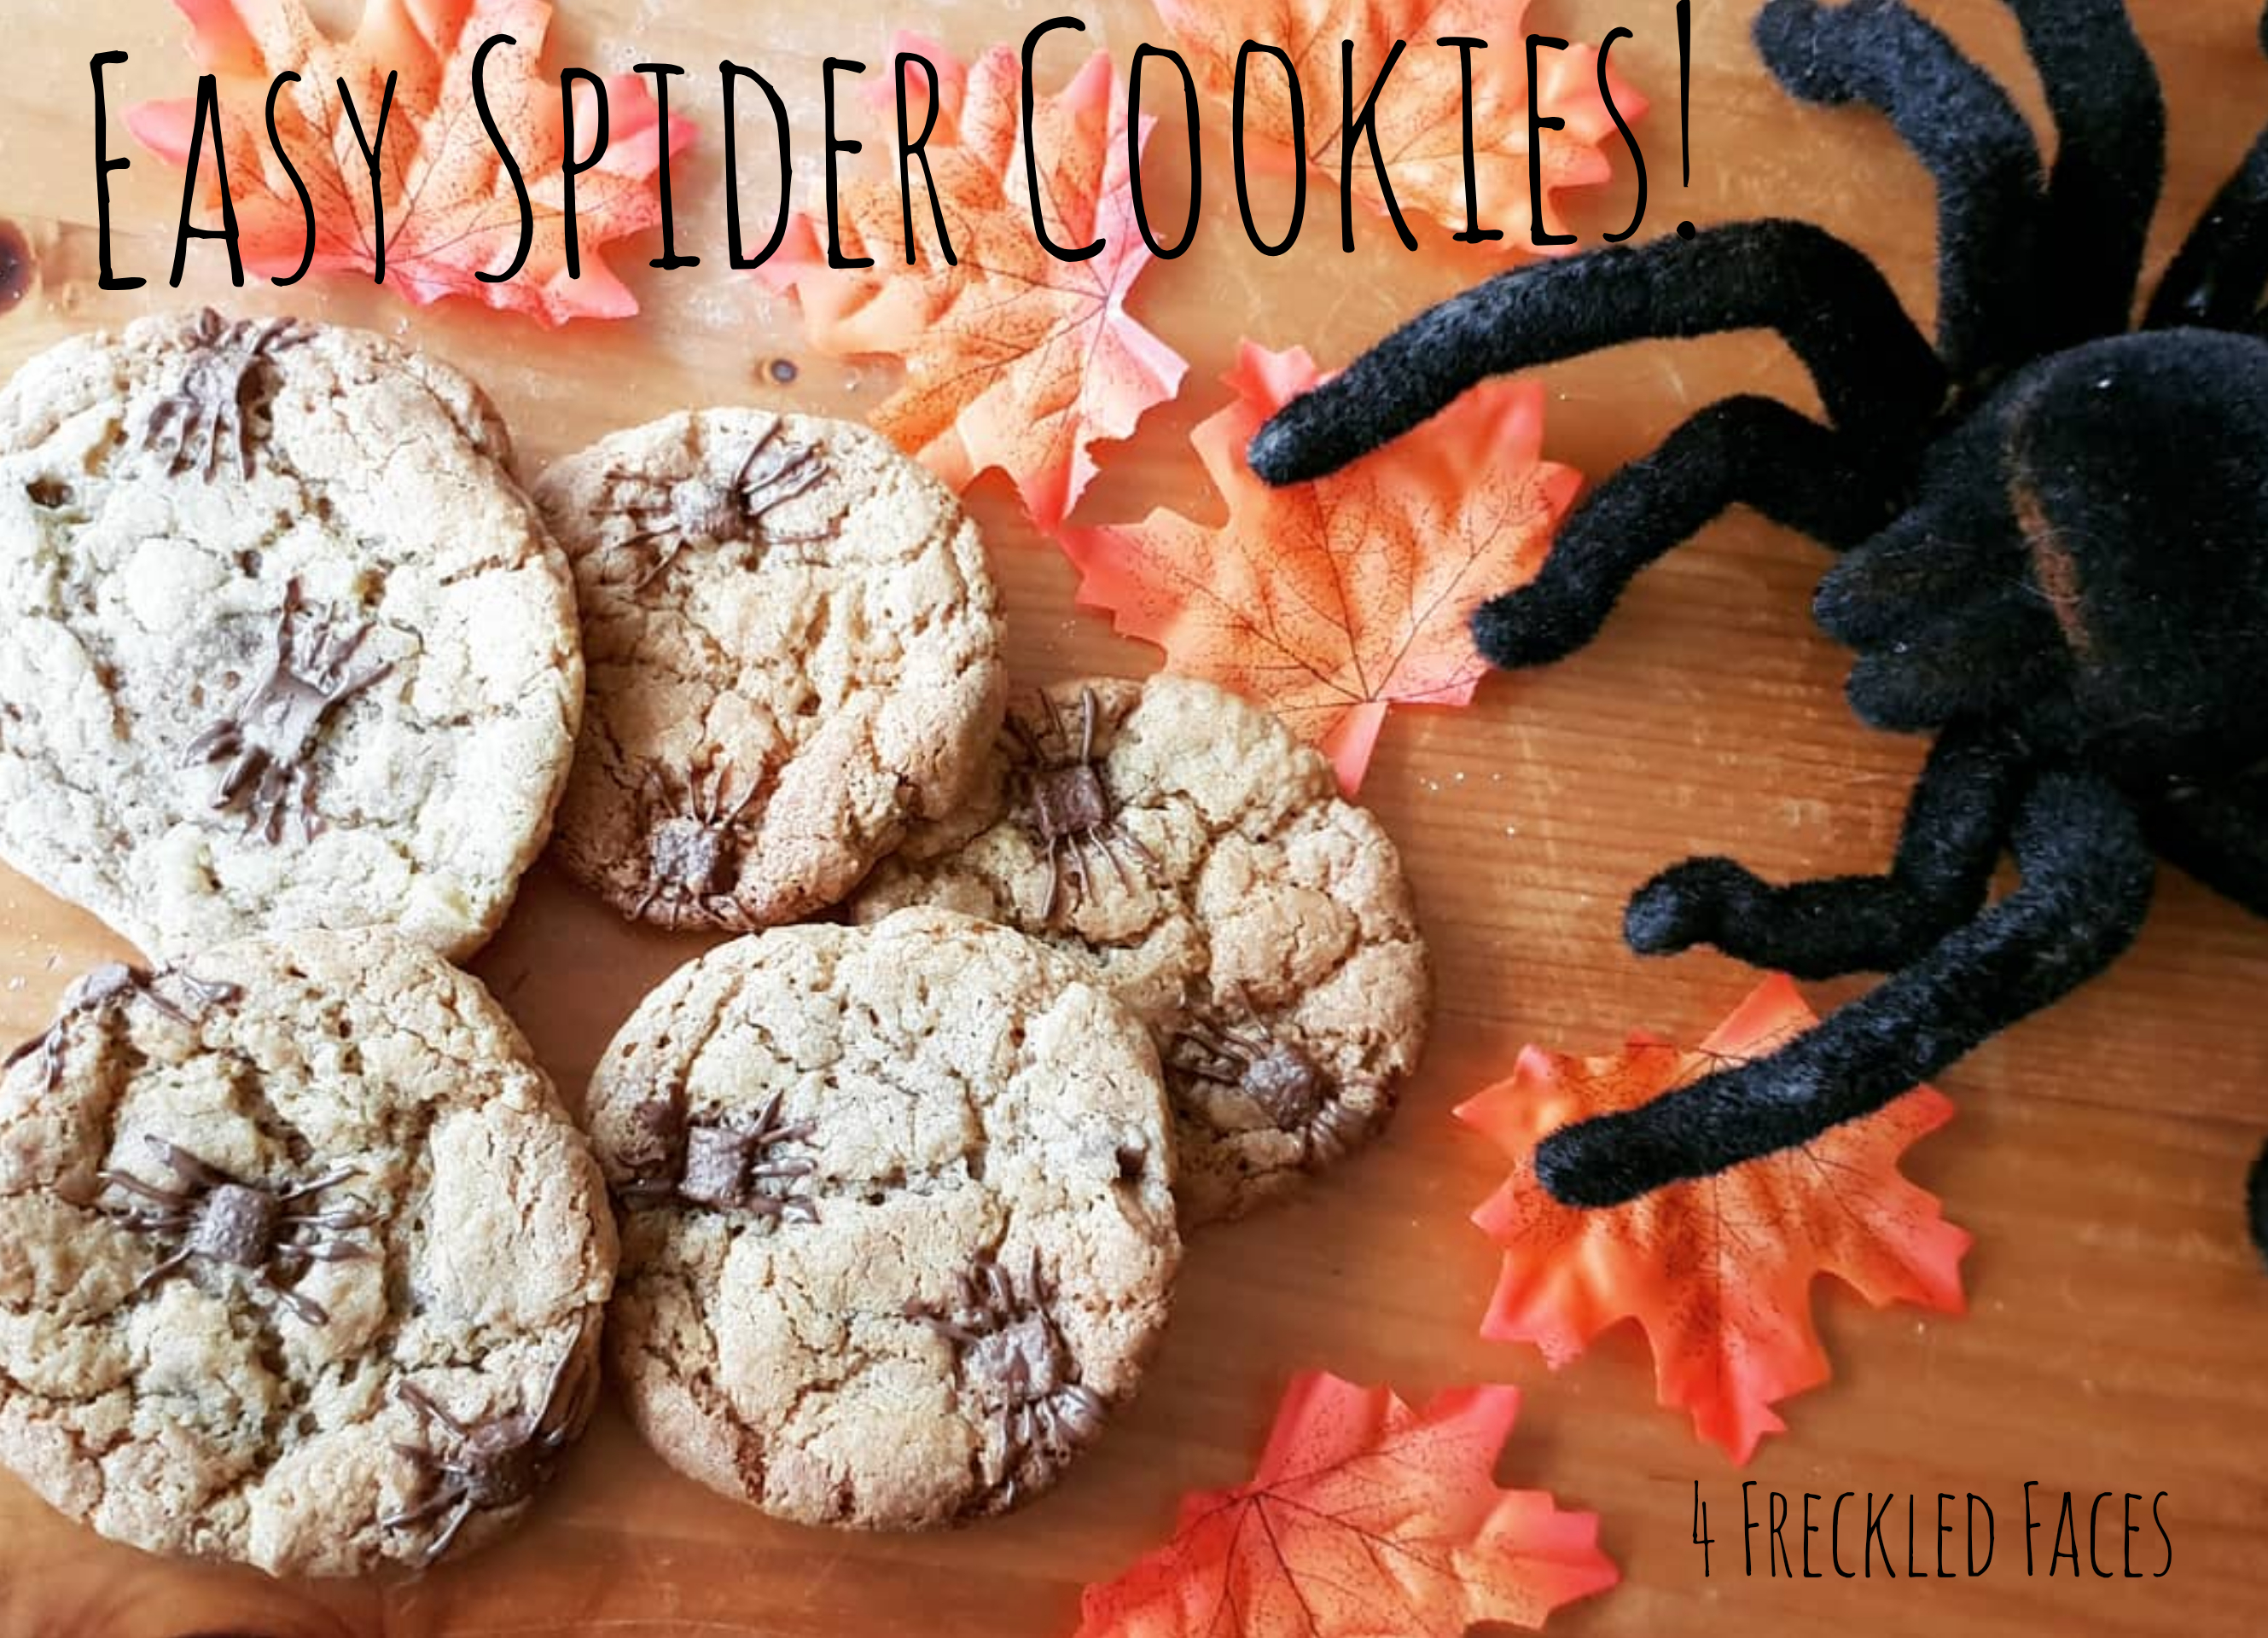 Reblog: Spider Cookies — 4 Freckled Faces